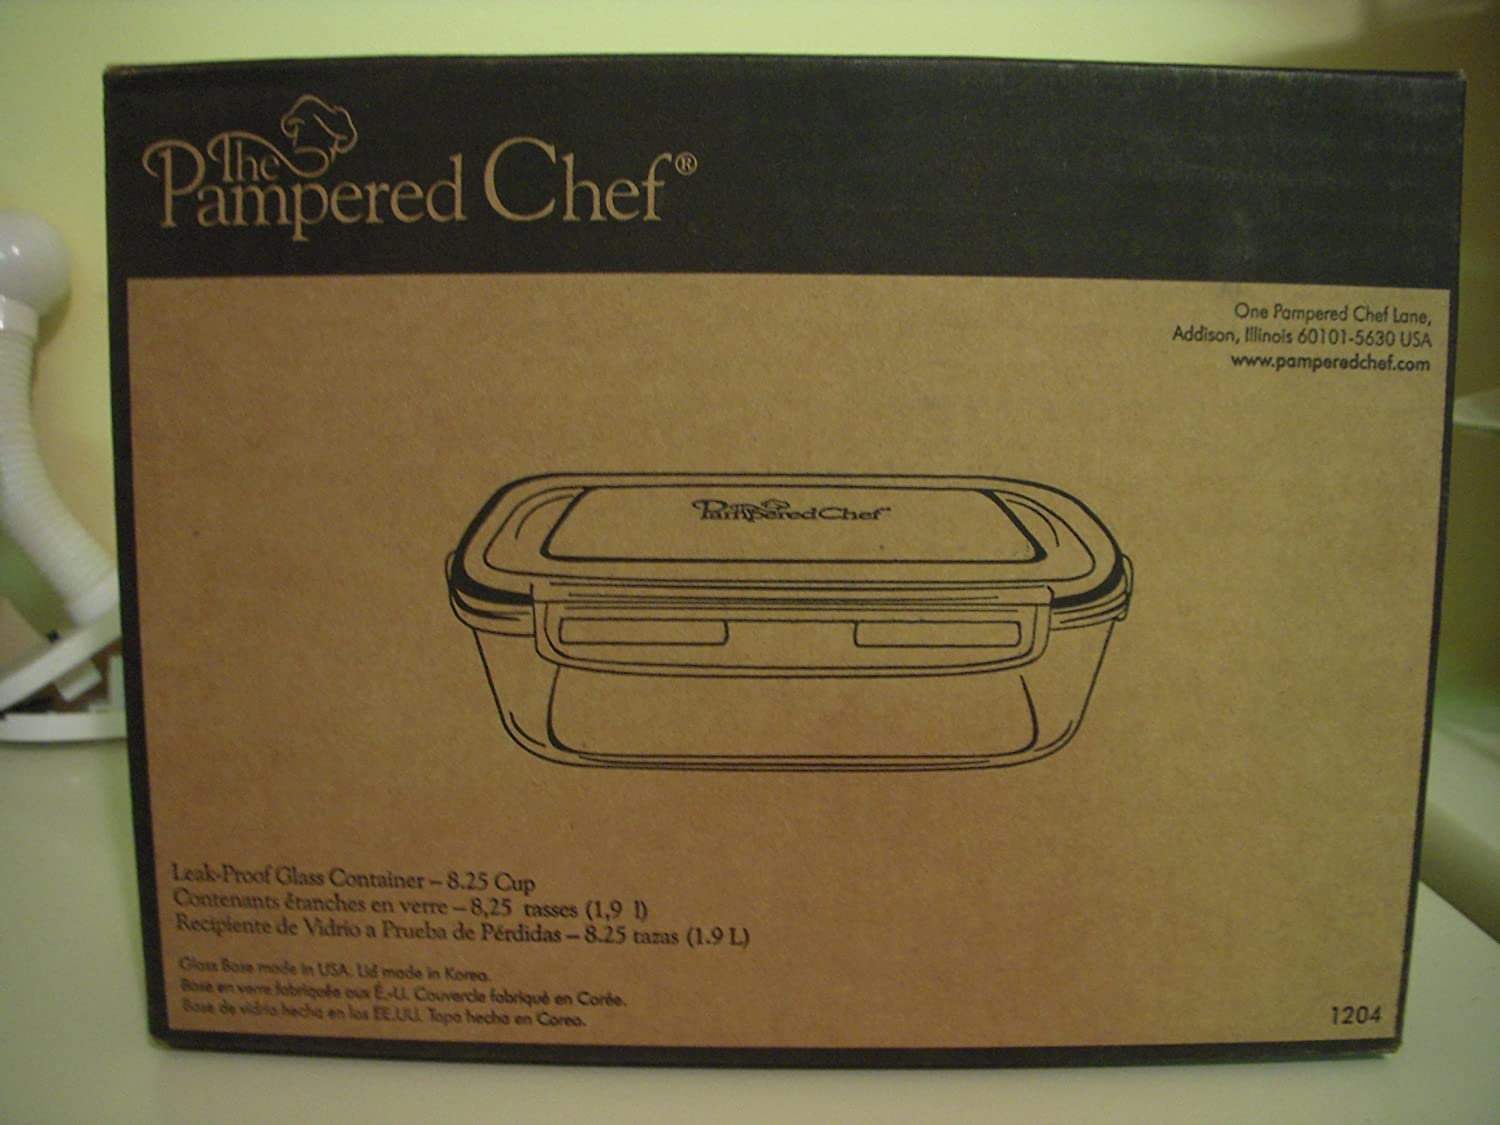 Pampered Chef 8 1/4-cup Rectangle Leakproof Glass Container with Lid